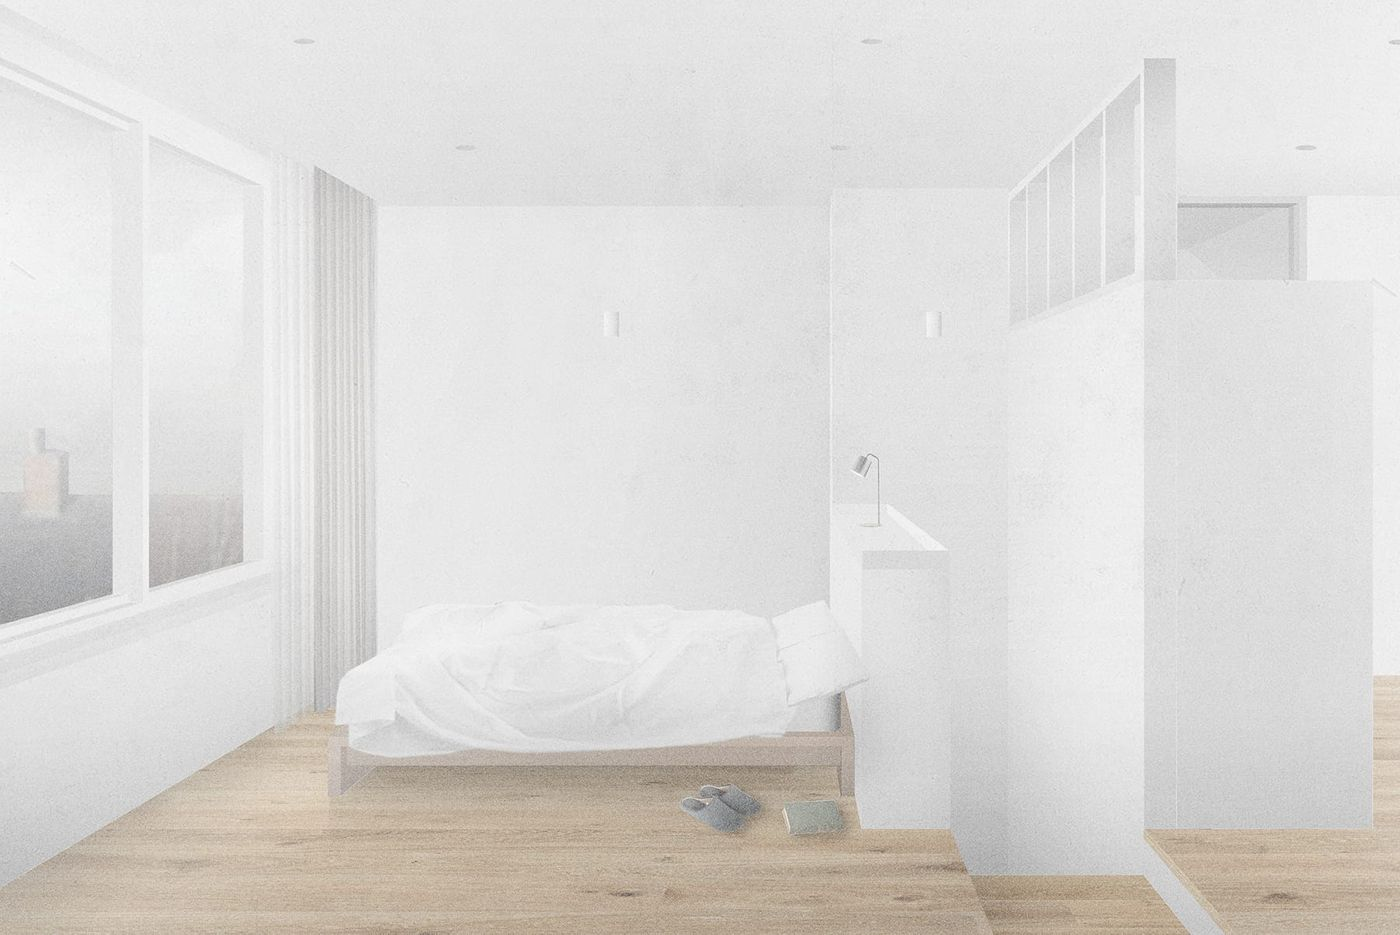 Internal view of new bedroom within the proposed dormer extension and refurbishment for the Whalley Road project designed by From Works.